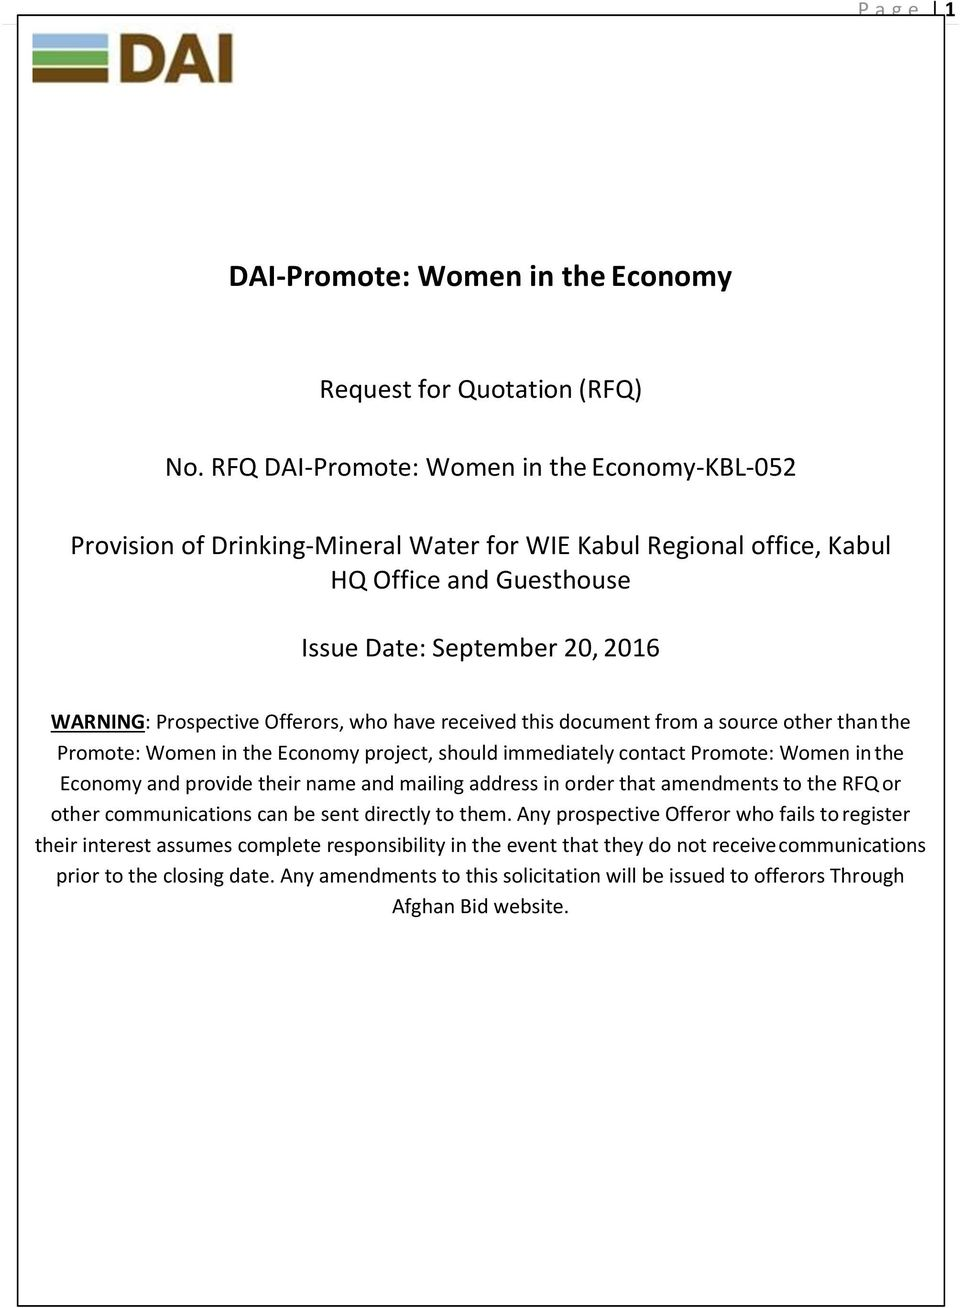 Office Supplies, as follows: DAI-Promote: Women in the Economy Request for Quotation (RFQ) No.